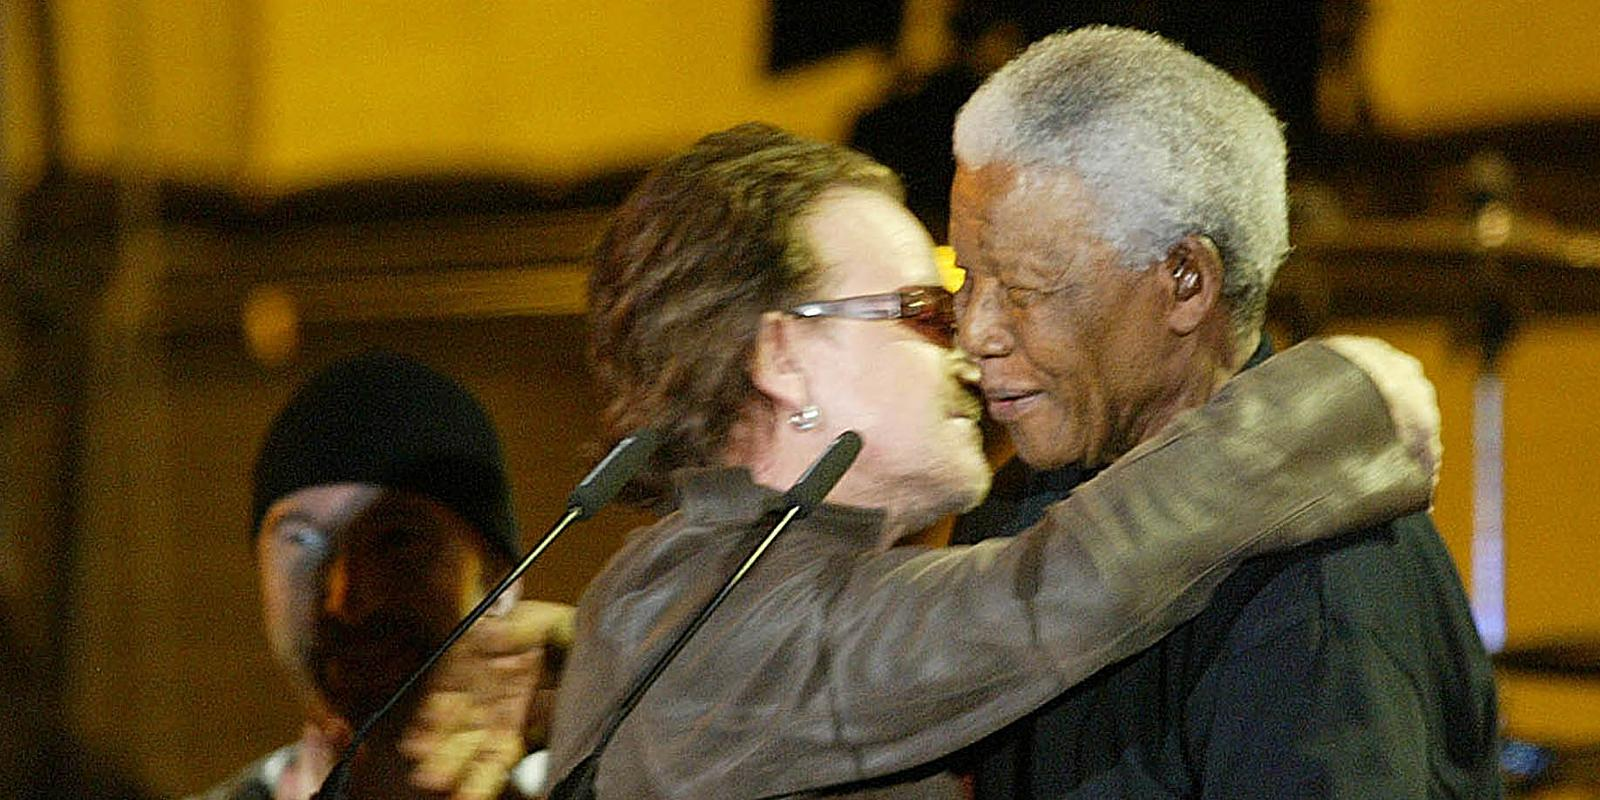 bono essay on mandela Los angeles - u2 frontman bono has paid tribute to nelson mandela by writing an essay on the late anti-apartheid revolutionary the 53-year-old singer, who along with.